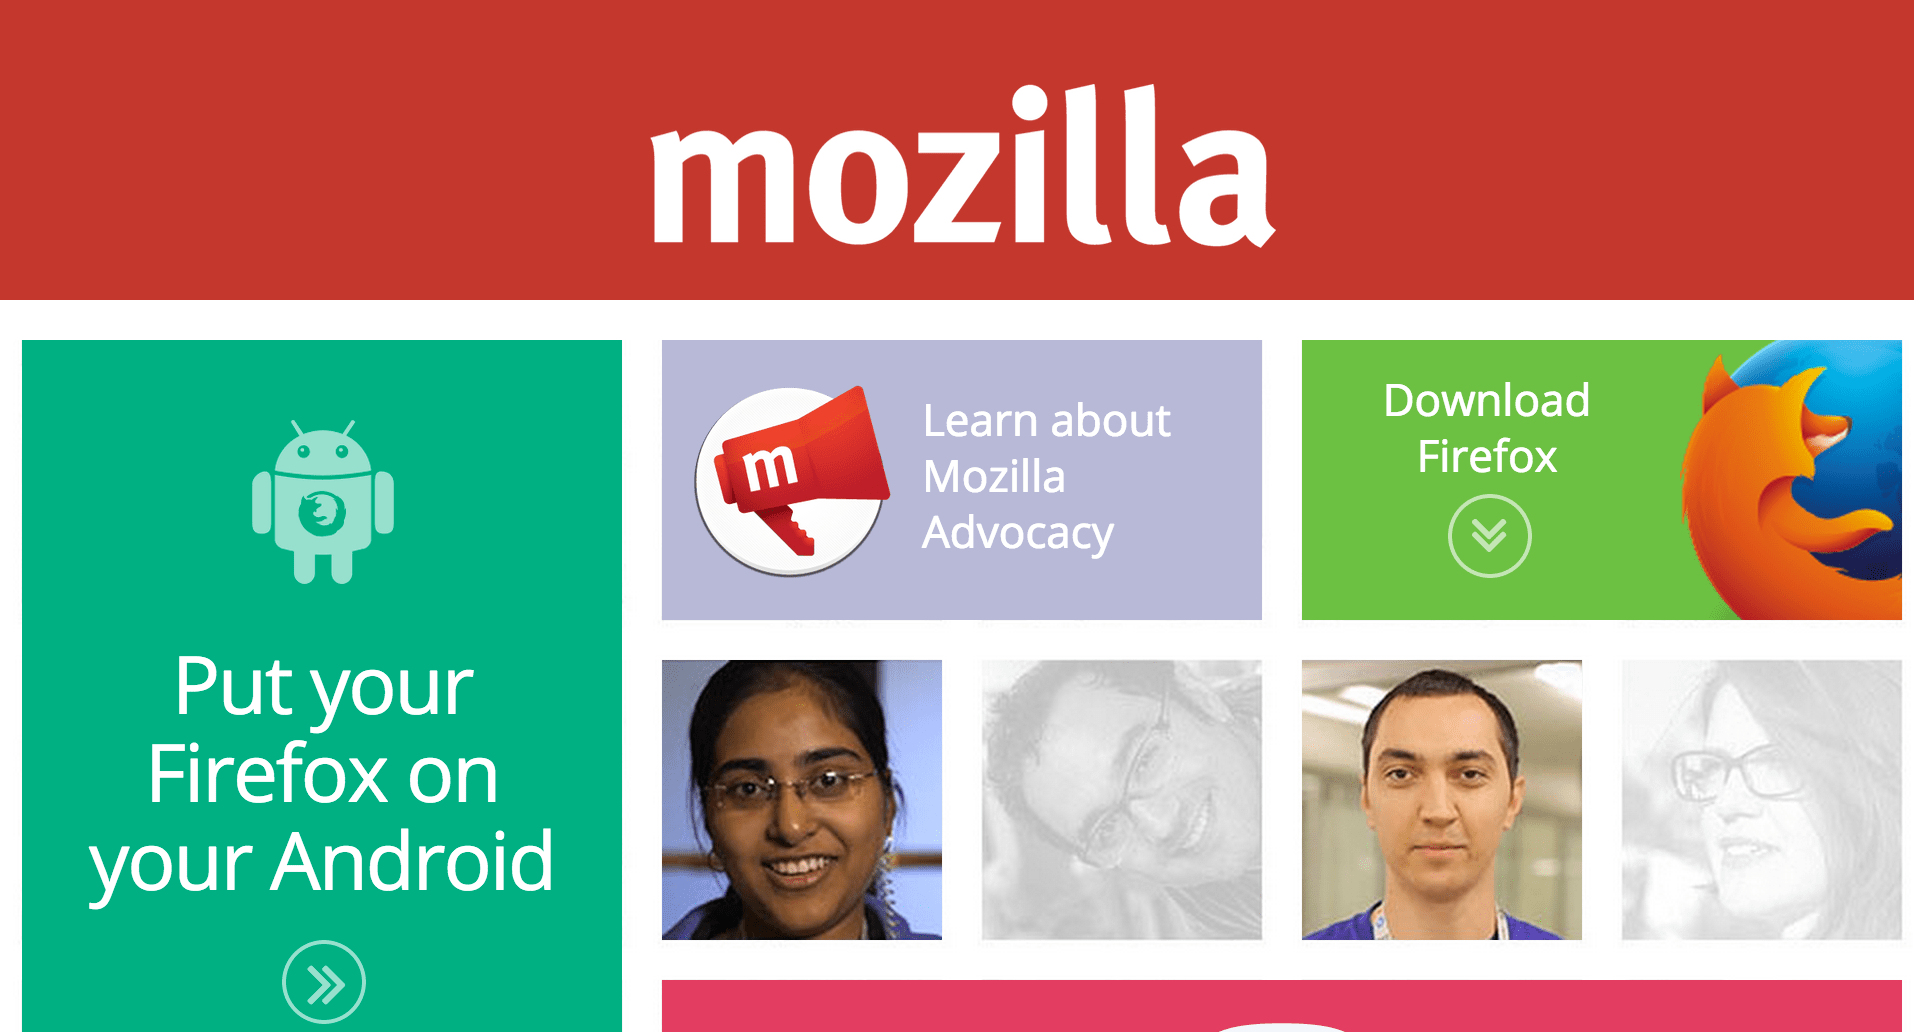 mozilla-website-screenshot